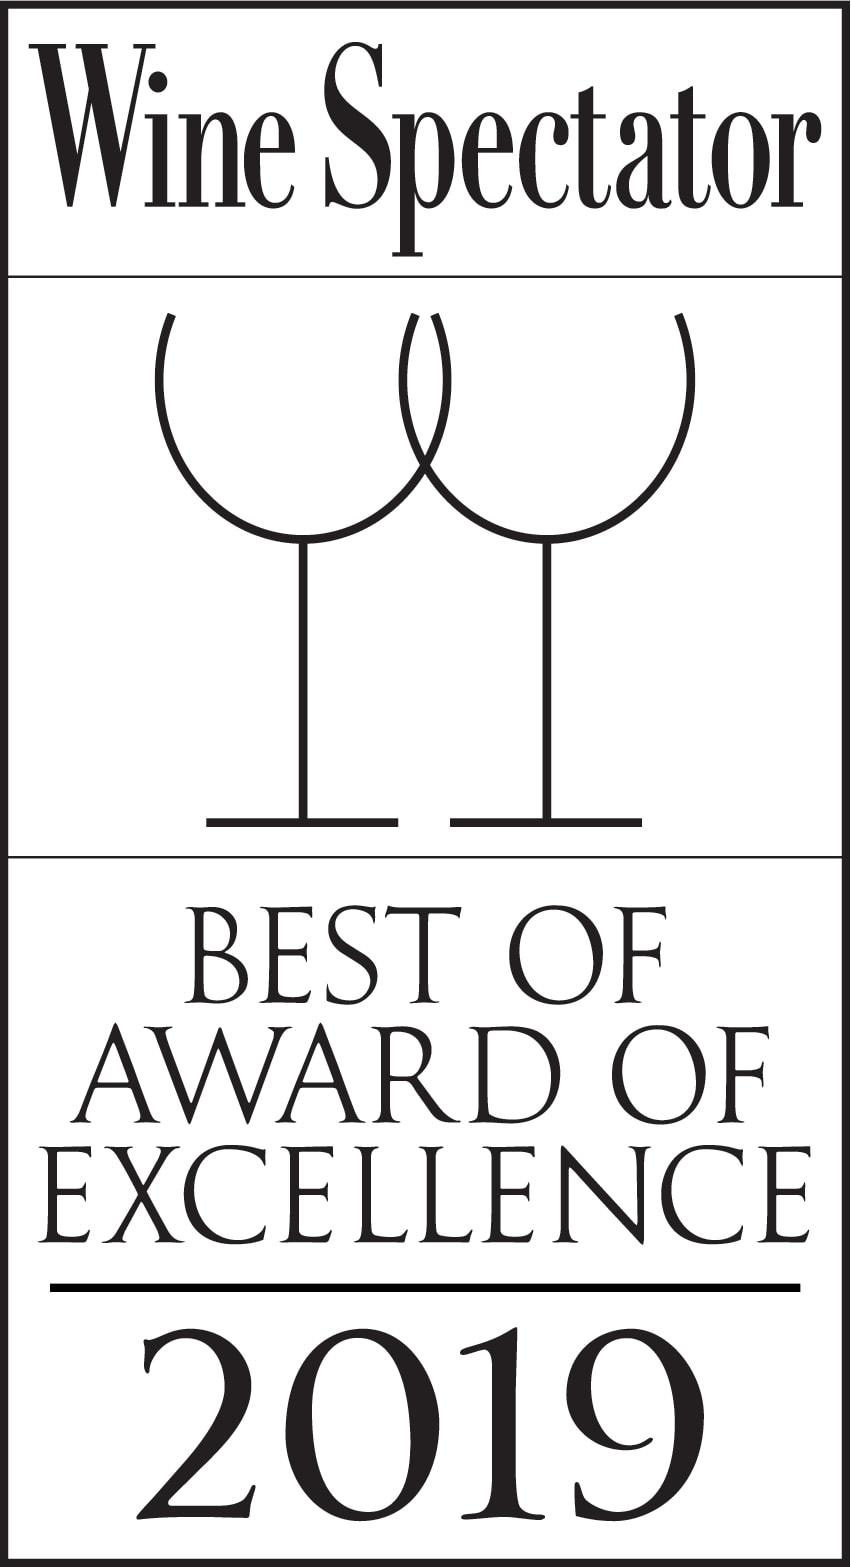 Wine Spectator Best of Award of Excellence 2018